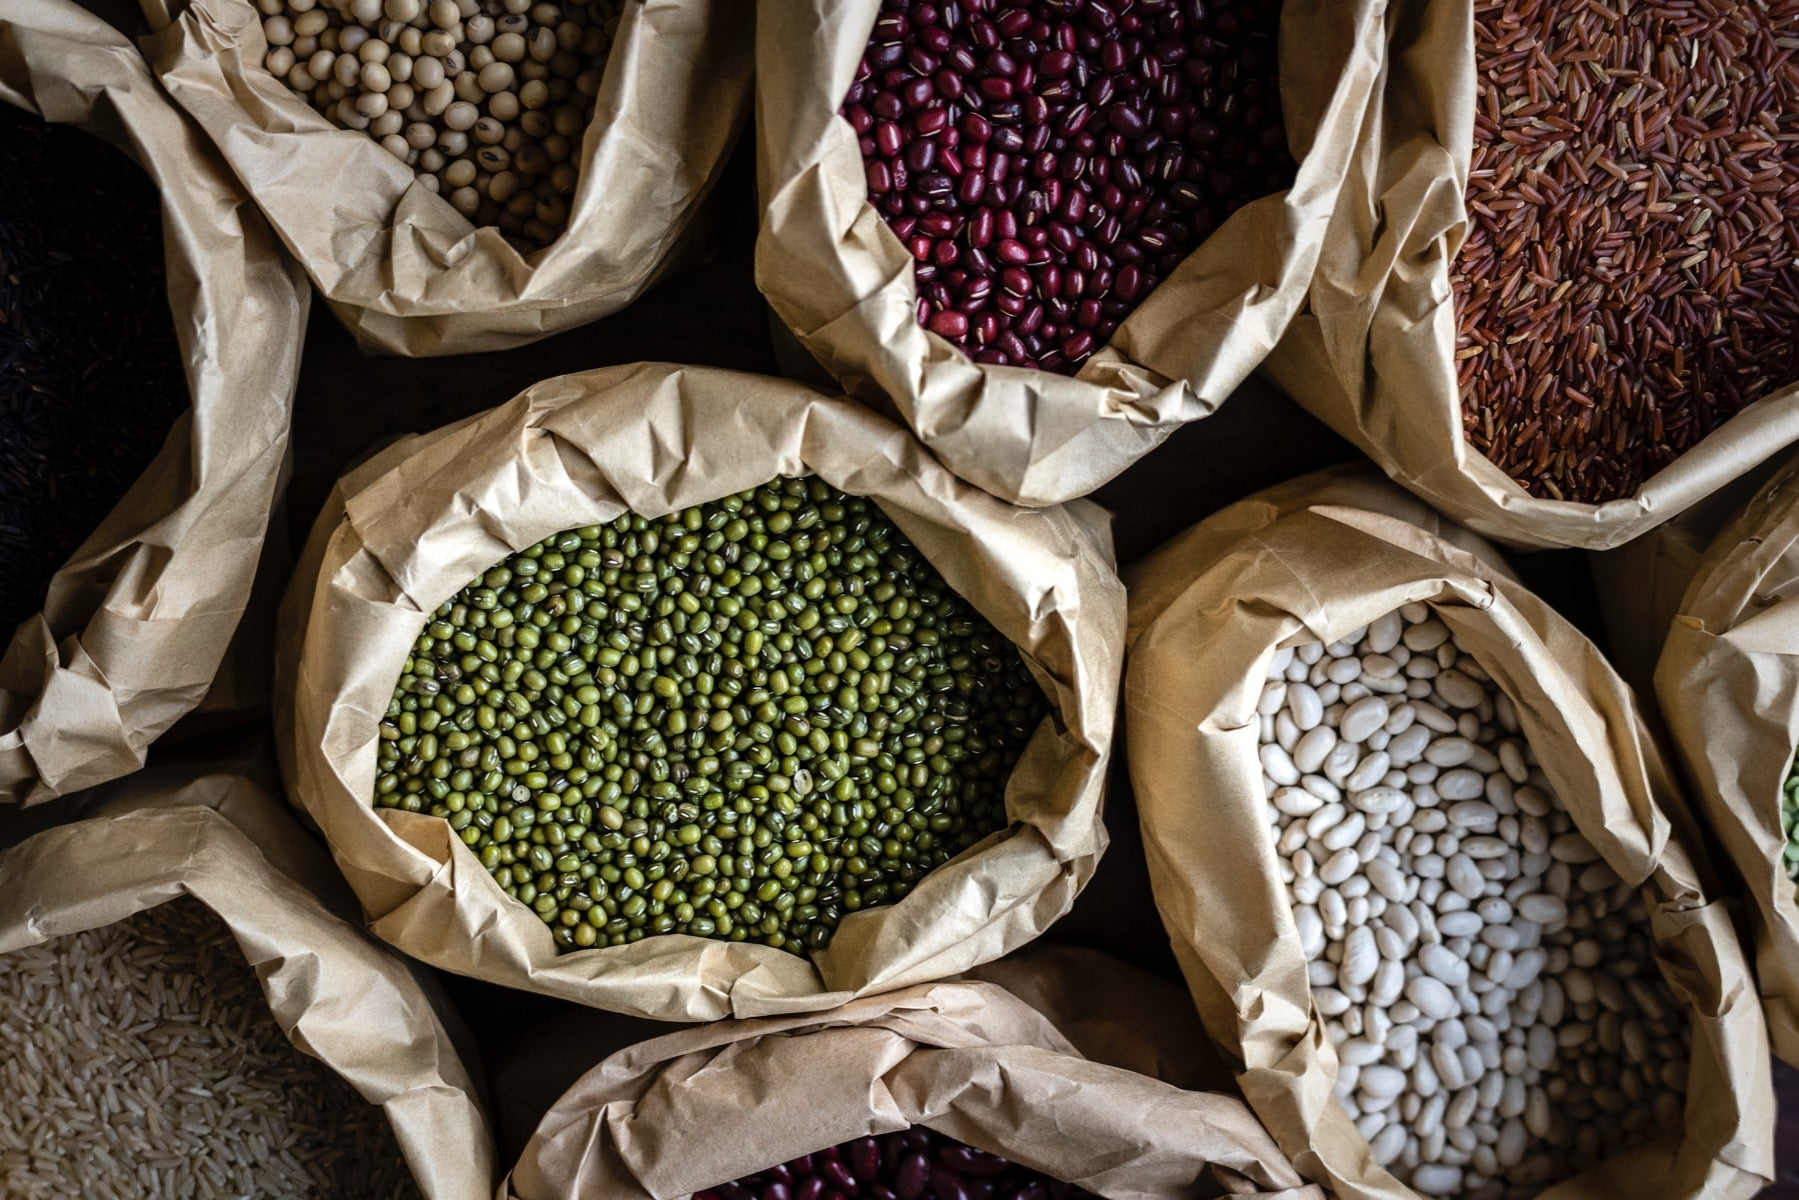 Several types of beans, peas, chickpeas, lentils, contain vegetable proteins